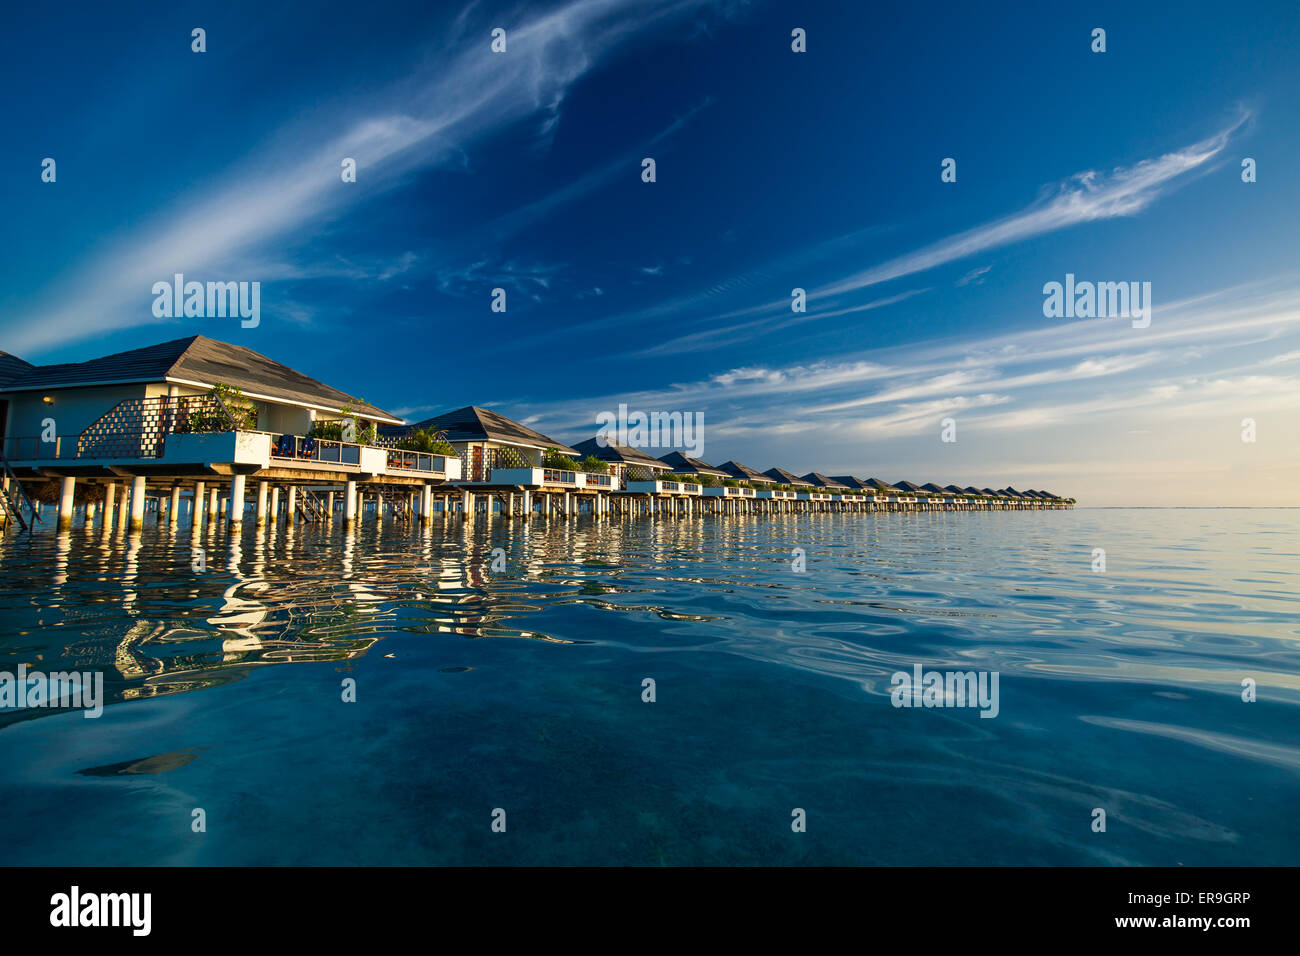 Over water villas in Maldives reflected in blue lagoon before sunset - Stock Image